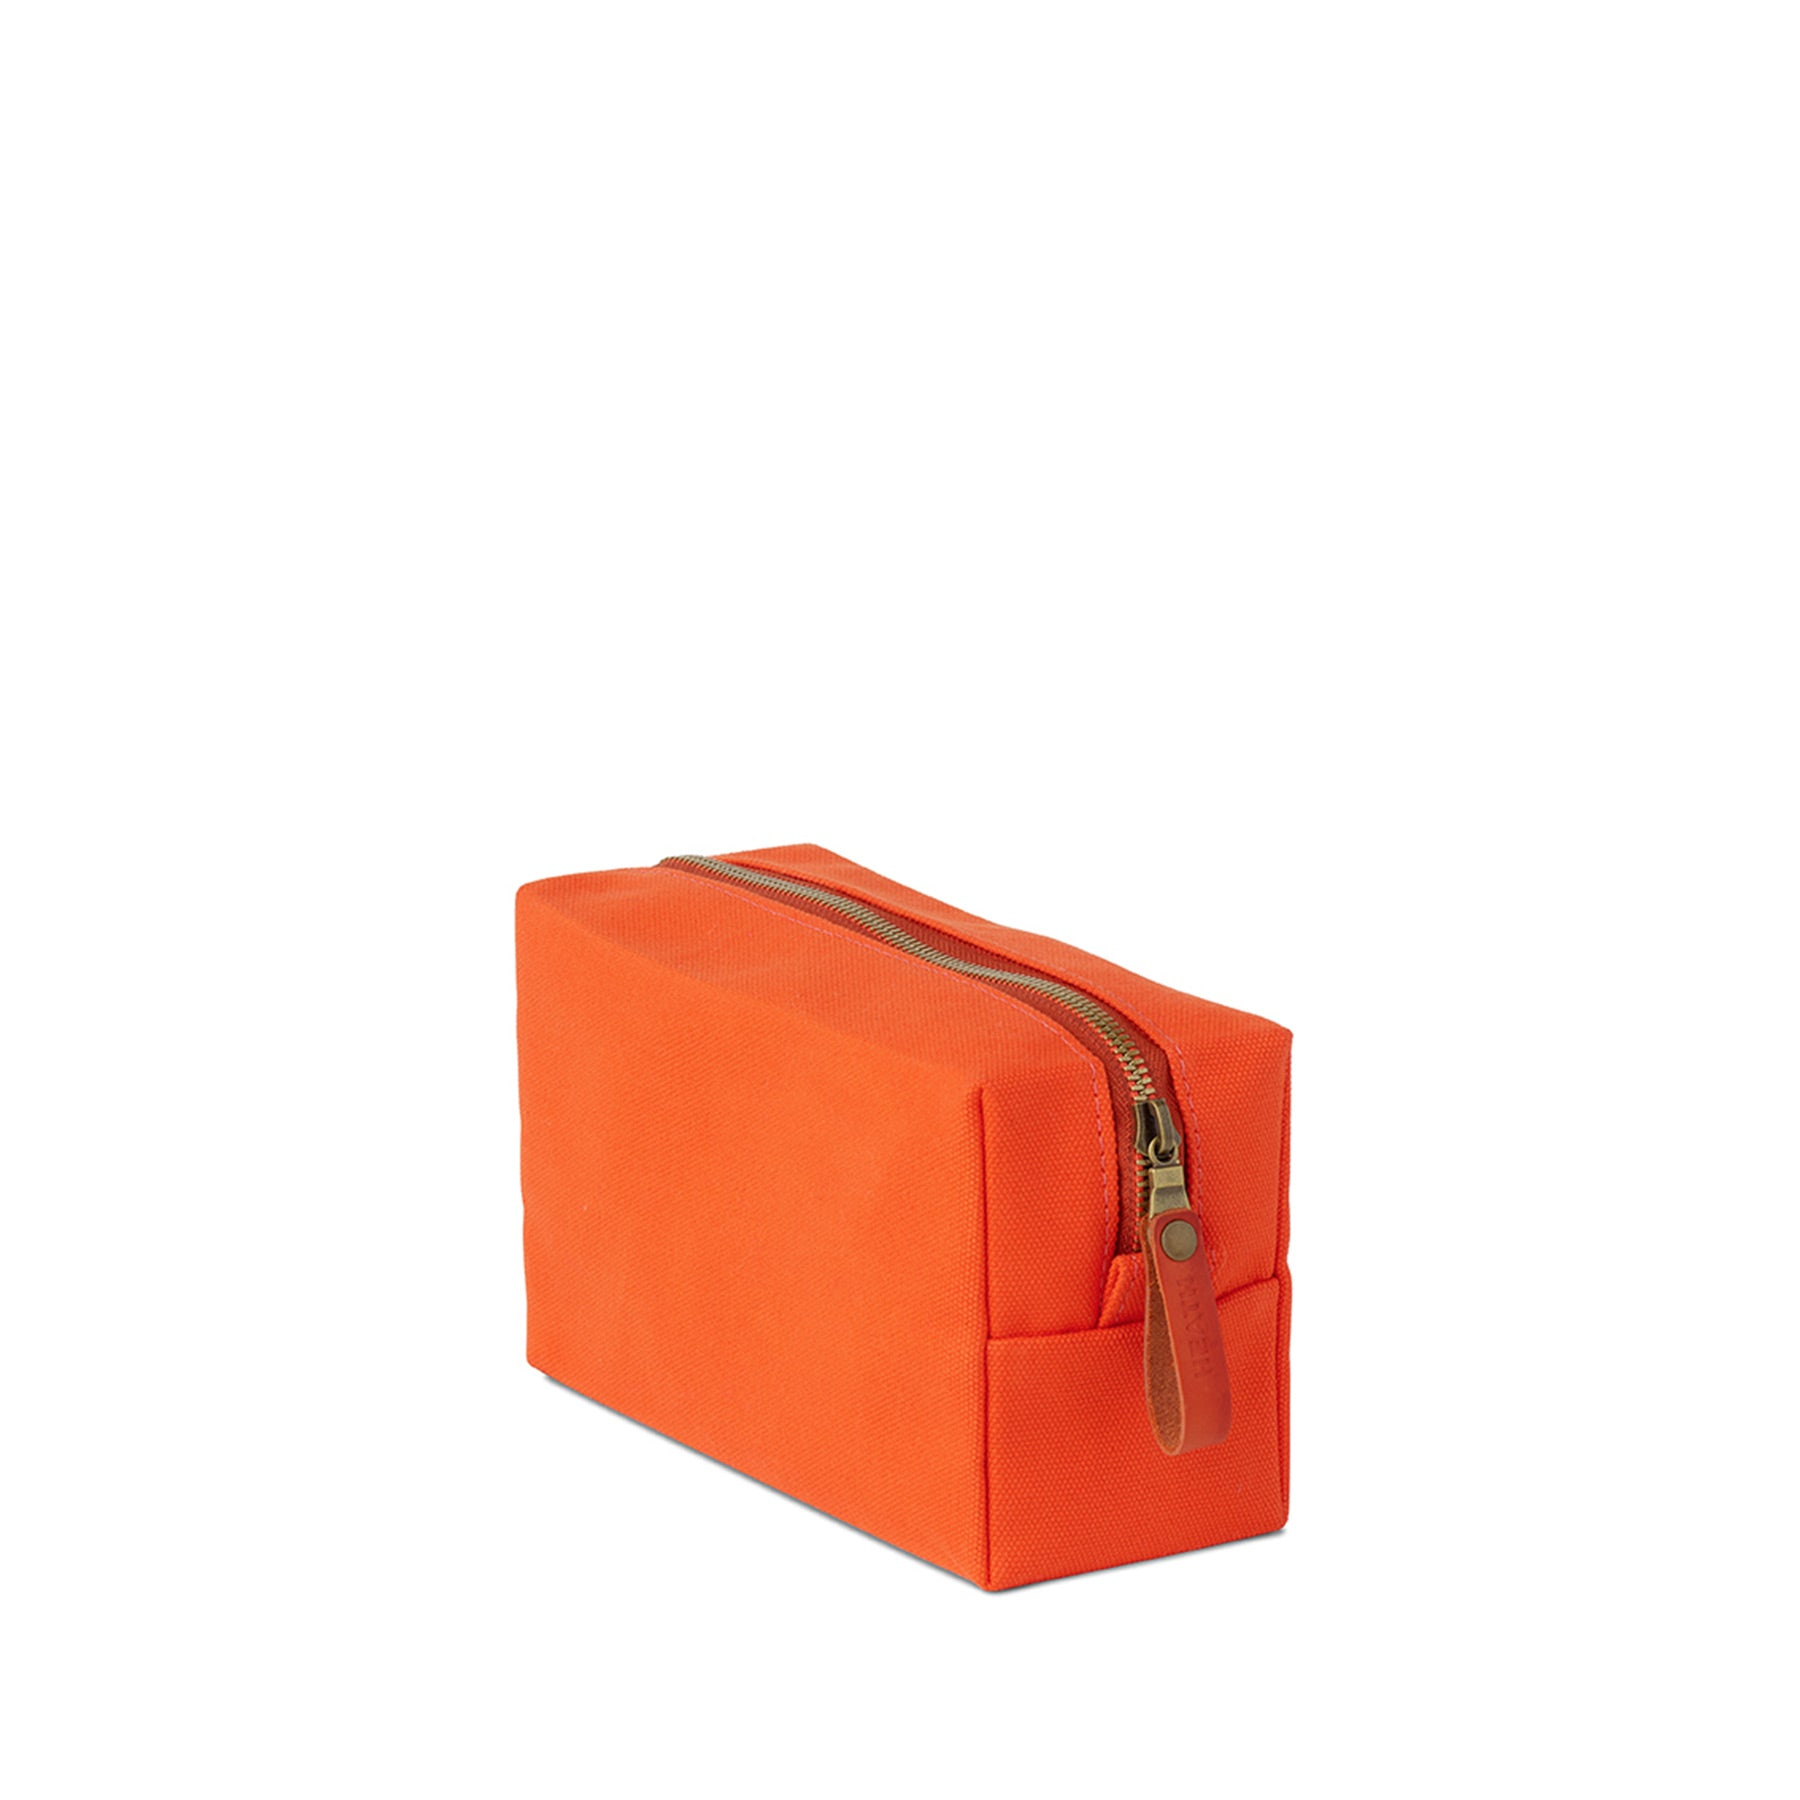 Tall Block Pouch in Heath Orange Zoom Image 1